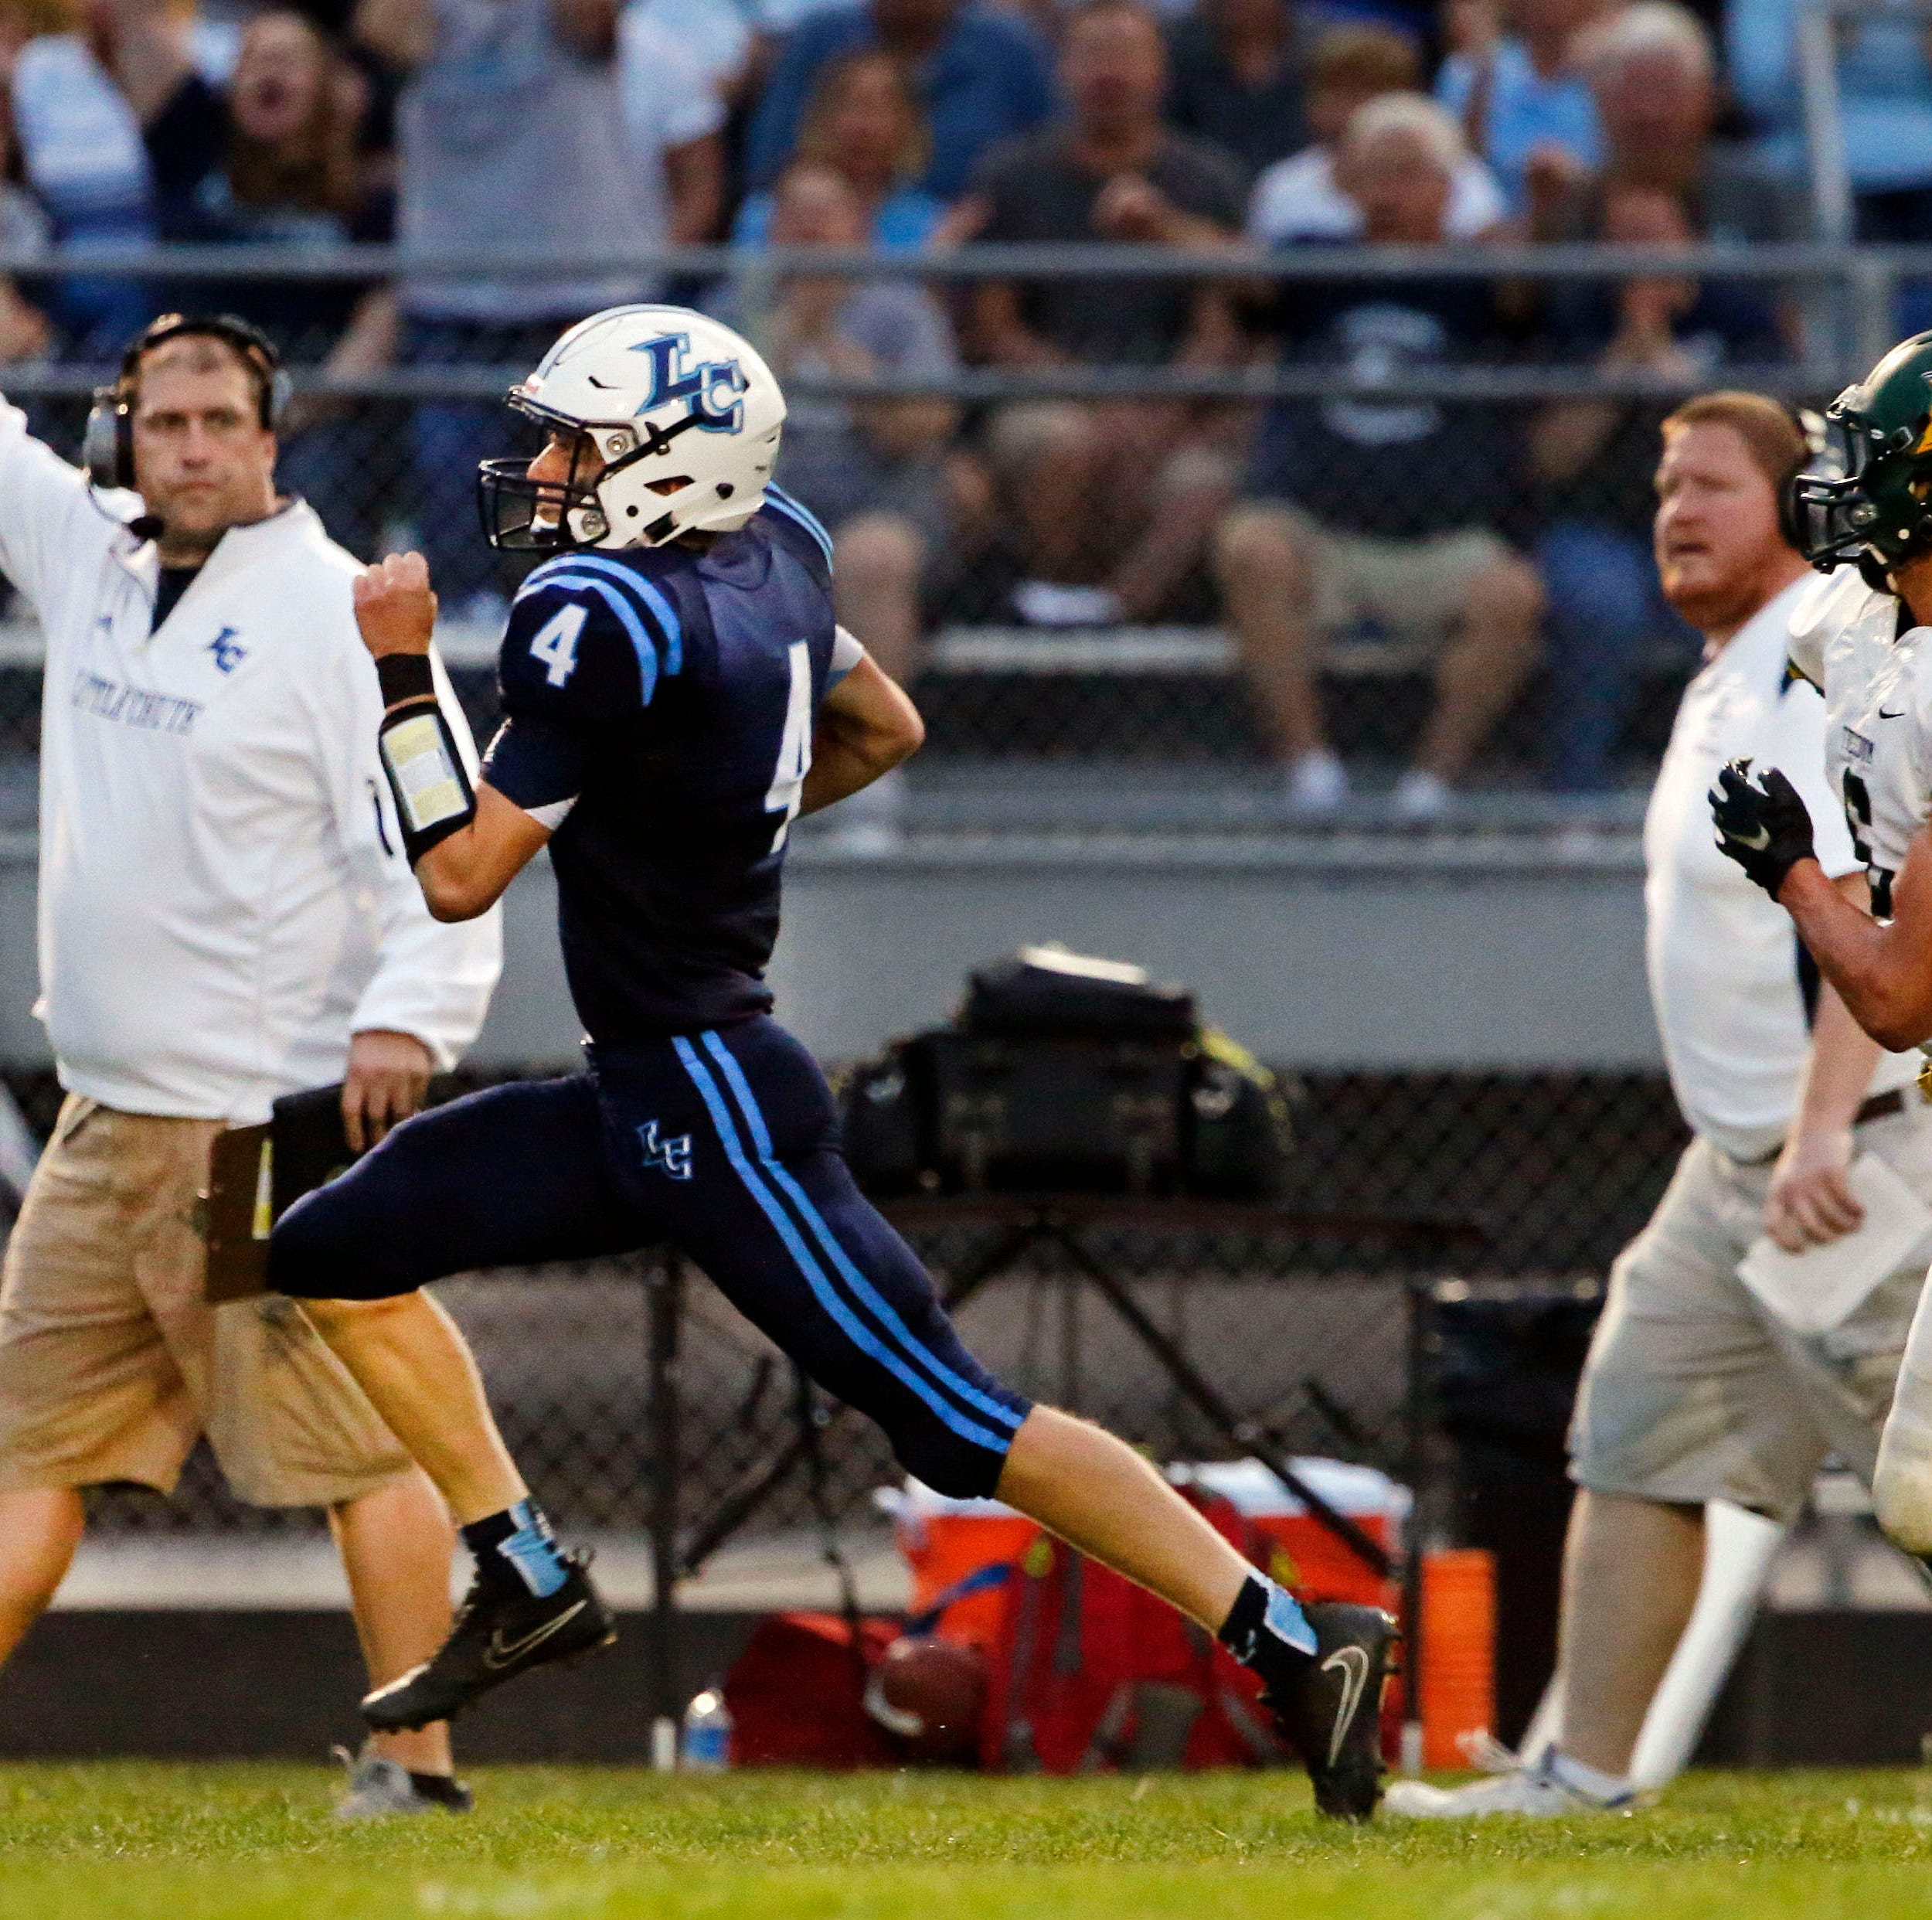 High school football: Little Chute rallies for victory over Freedom